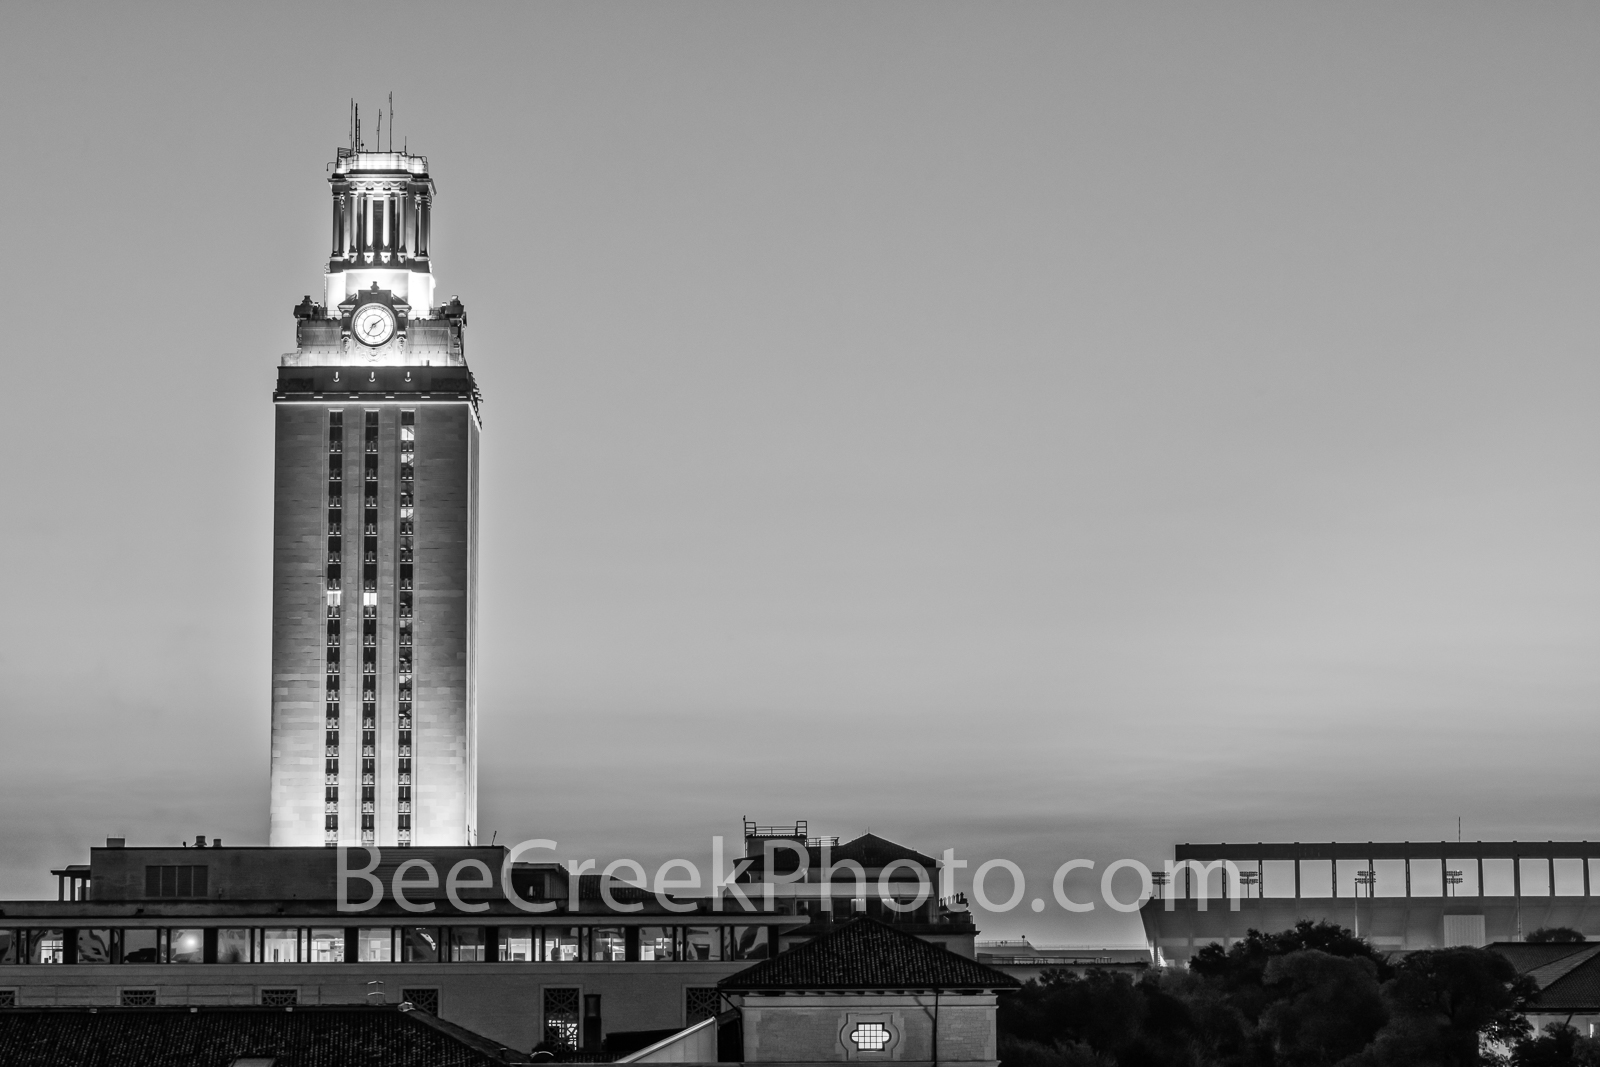 ut tower, texas, austin, austin texas, downtown austin, university of texas, ut austin, student union, darrell k royal, stadium, ut campus,black and white, bw, b w, darrell k royal-texas memorial stad, photo